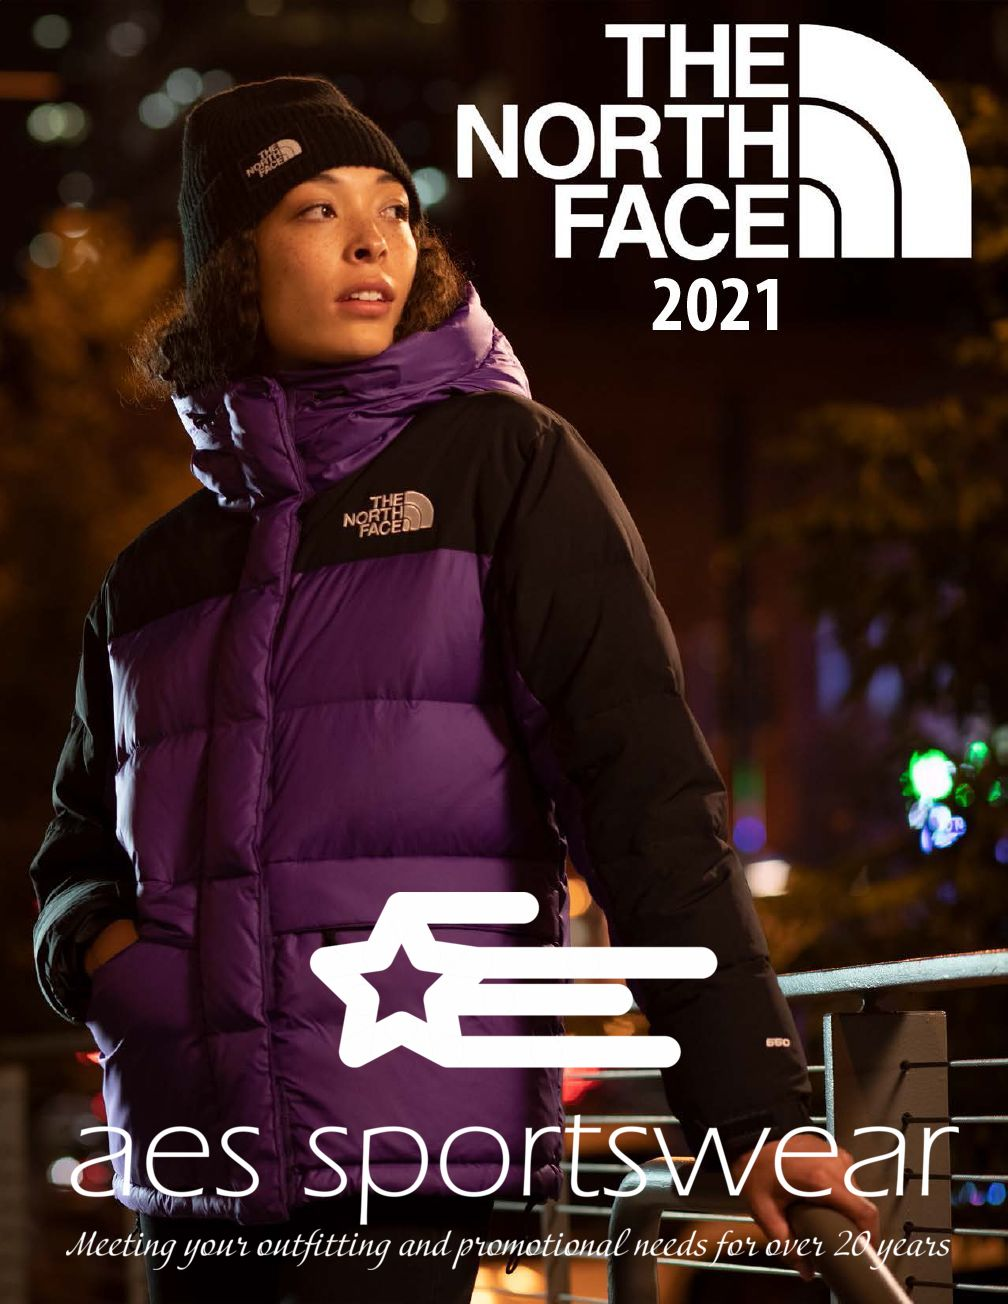 North Face 2021